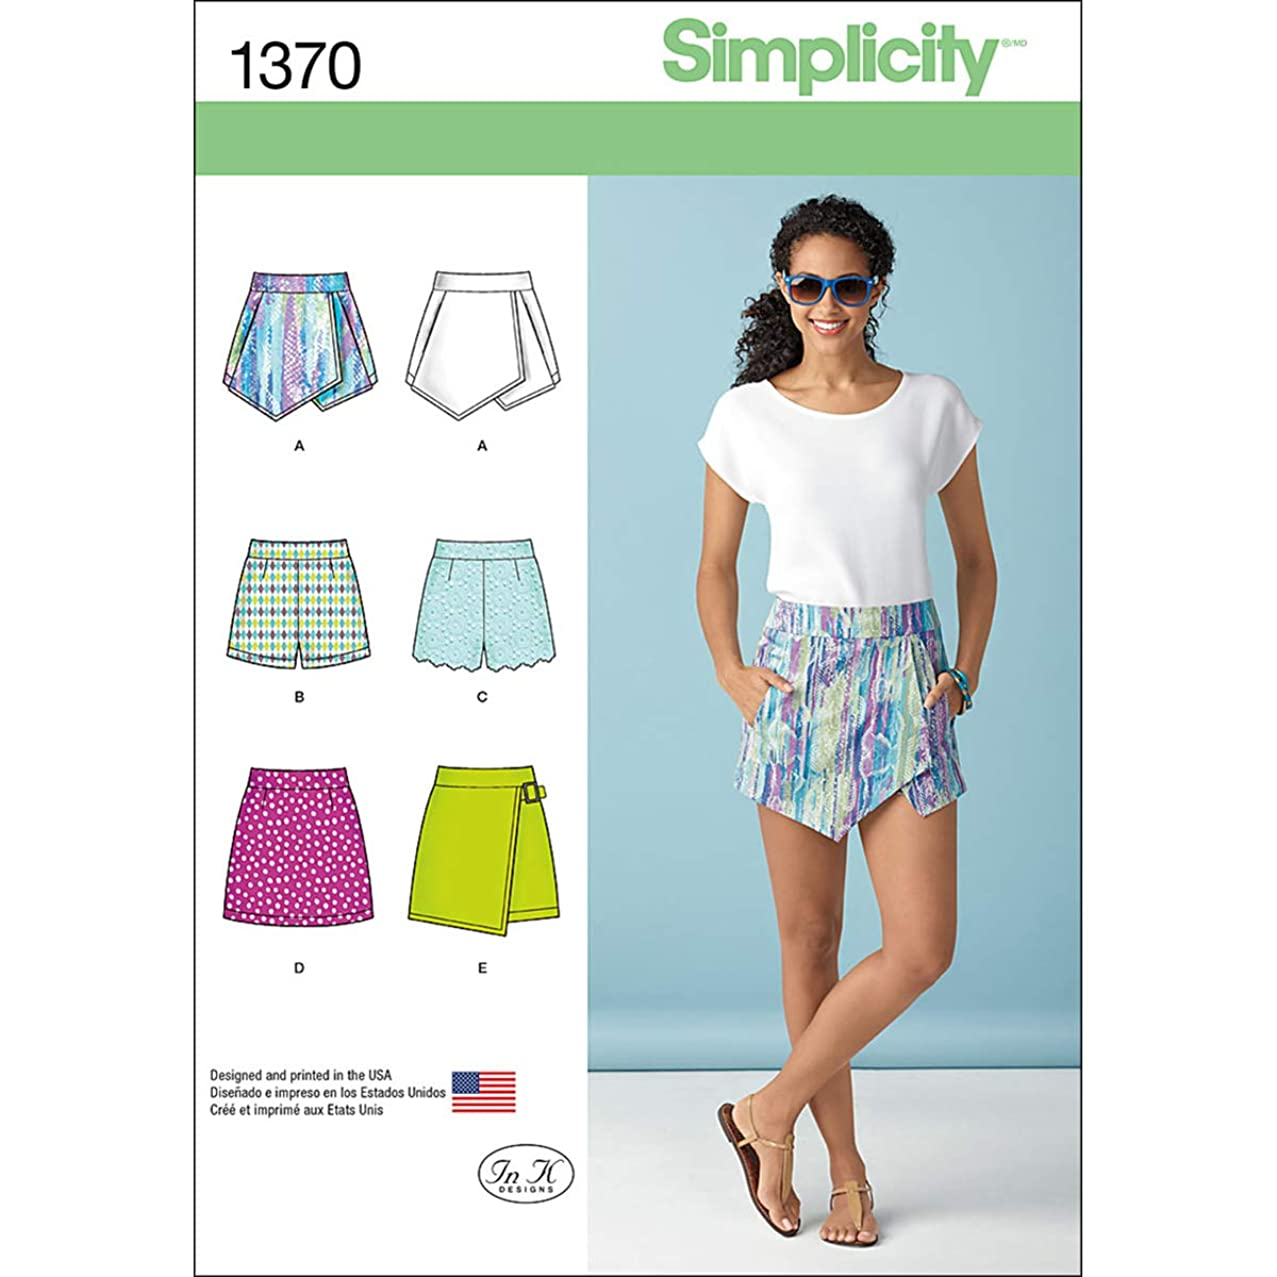 Simplicity 1370 Women's Vintage Shorts, Skorts, and Skirt Sewing Patterns, Sizes 14-22